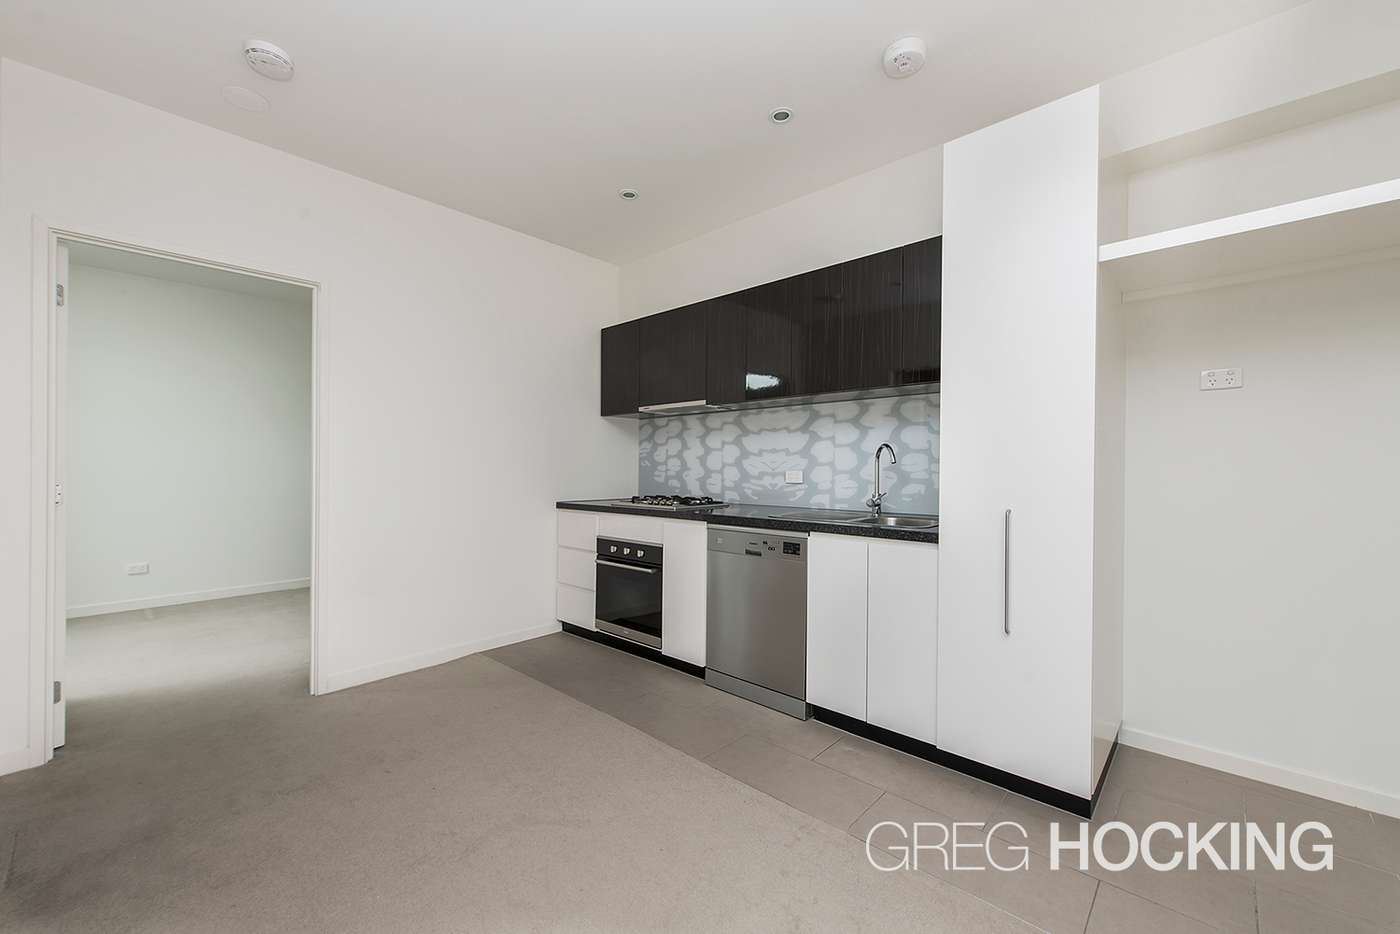 Sixth view of Homely house listing, 202/64 Cross Street, Footscray VIC 3011